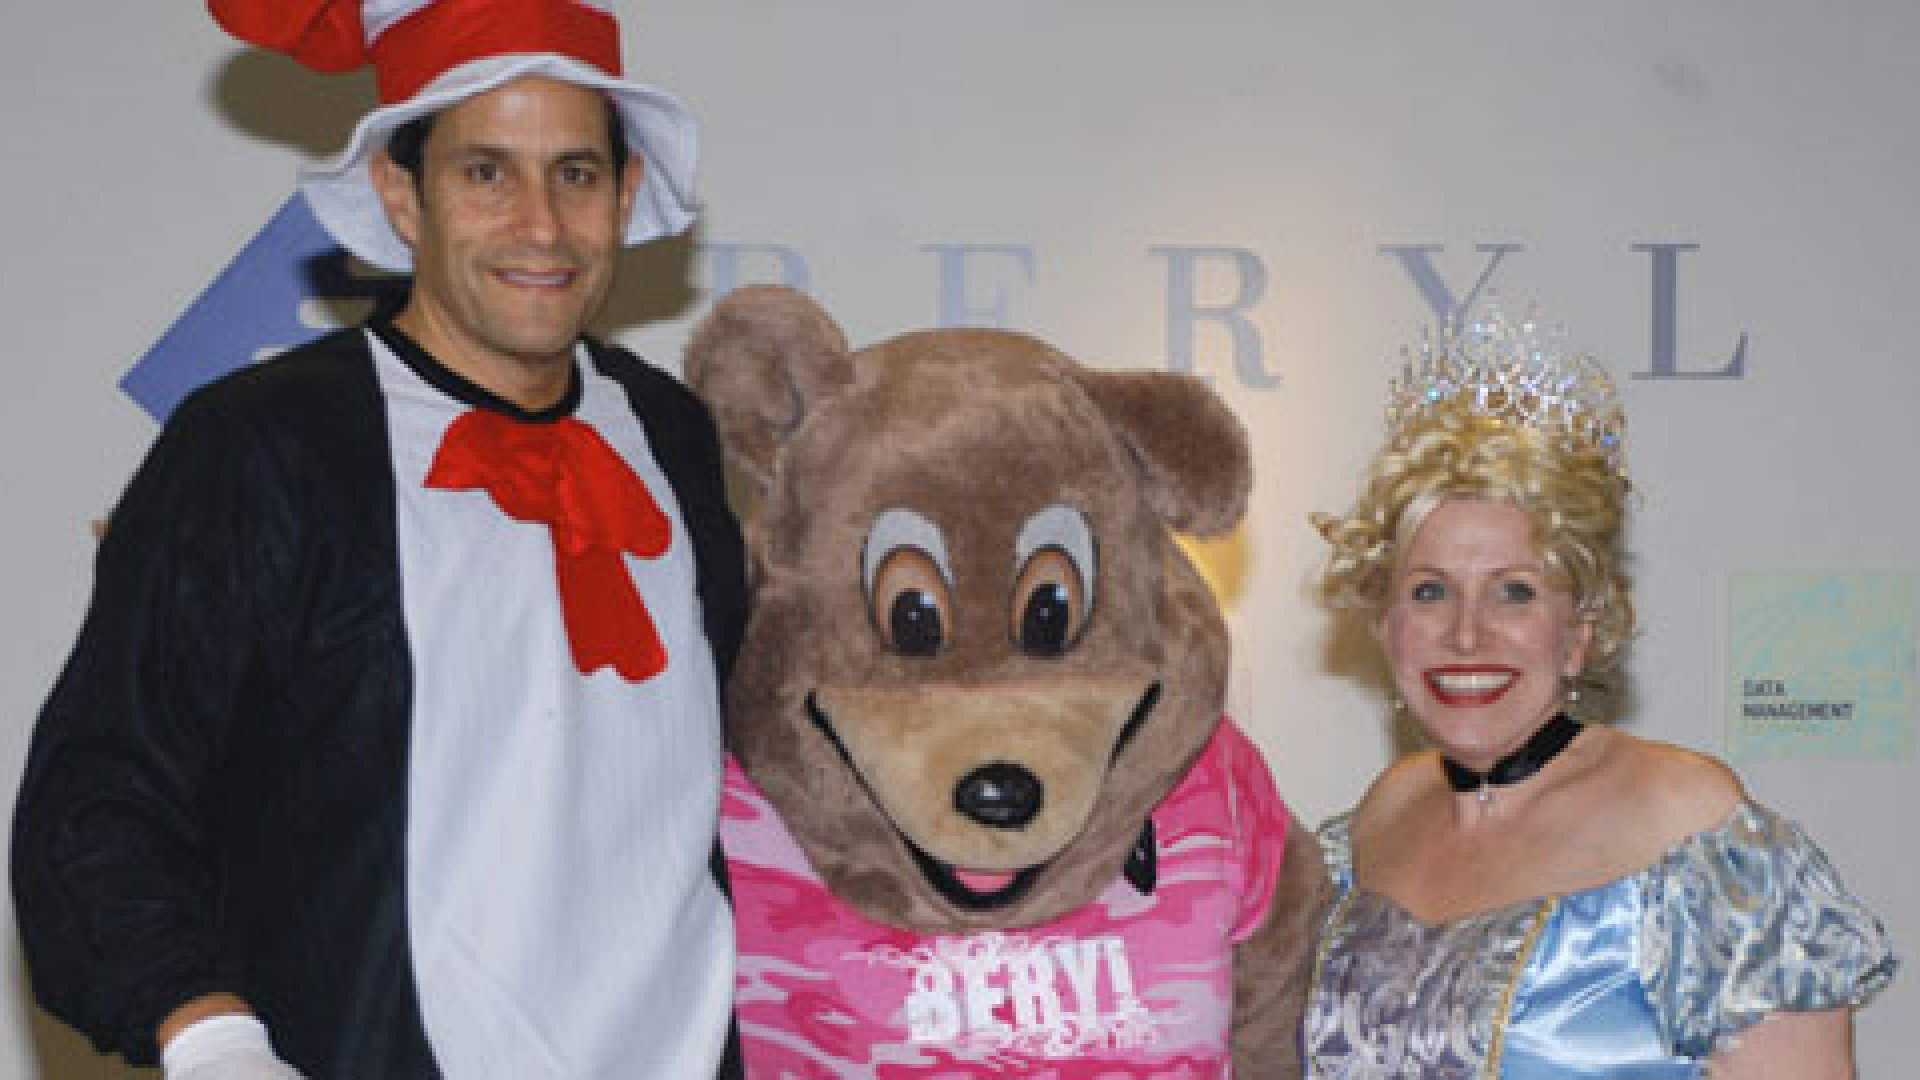 Beryl founder Paul Spiegelman with Lara Morrow, Beryl's queen of laughter and fun, and the Beryl bear in 2008.